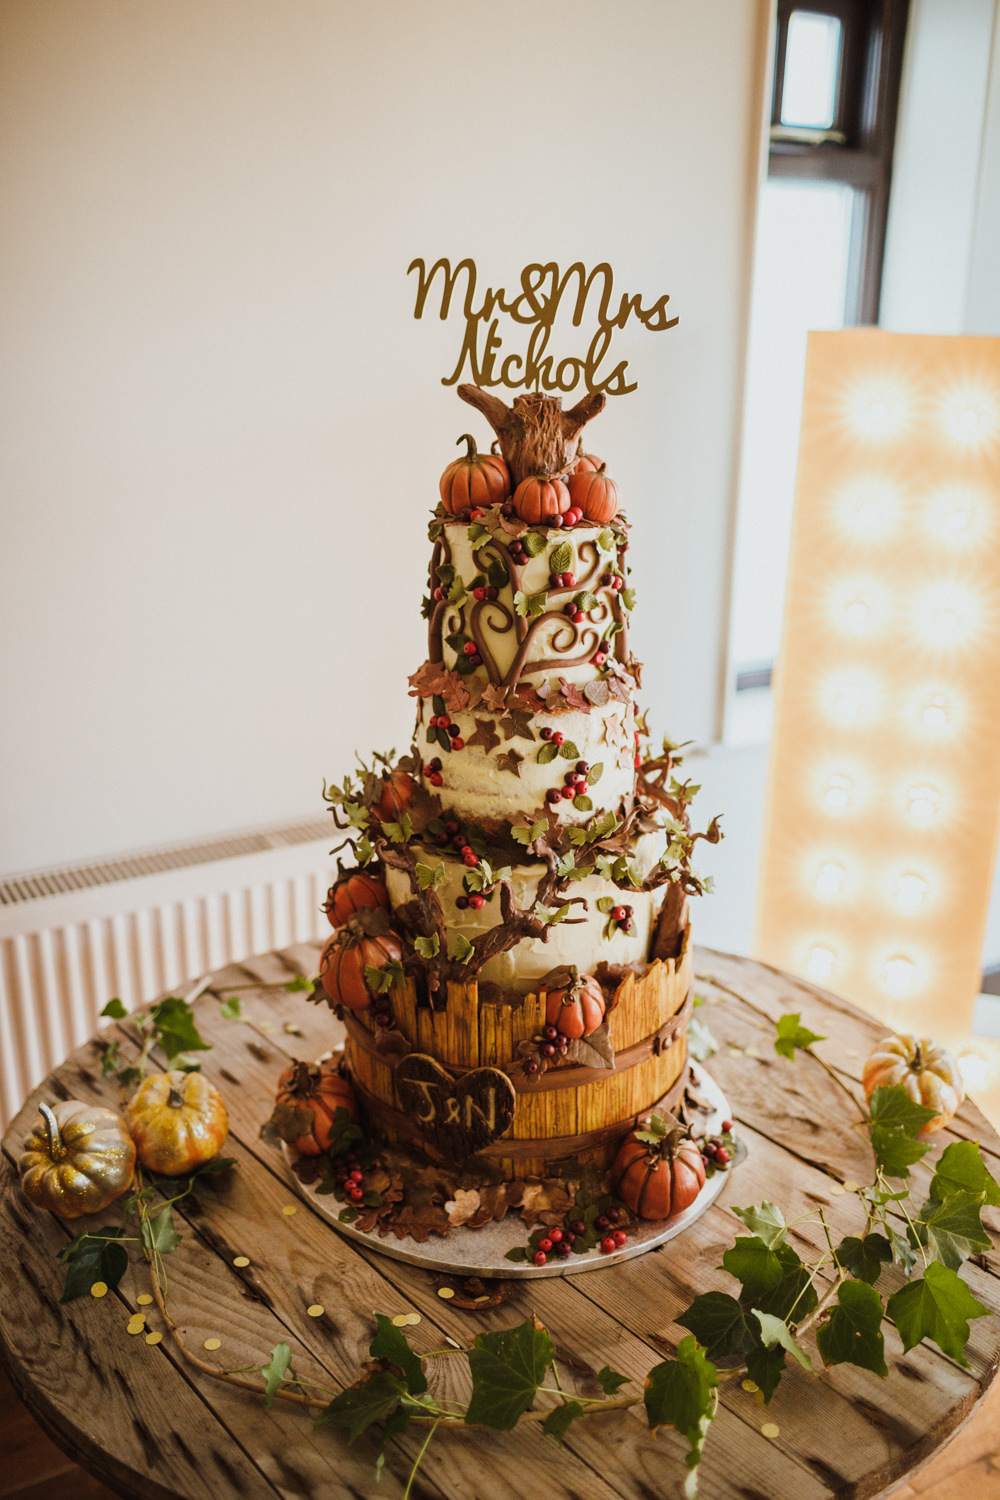 Autumn Autumnal Cake Pumpkins Leaves Berries Ox Pasture Hall Wedding Photography34